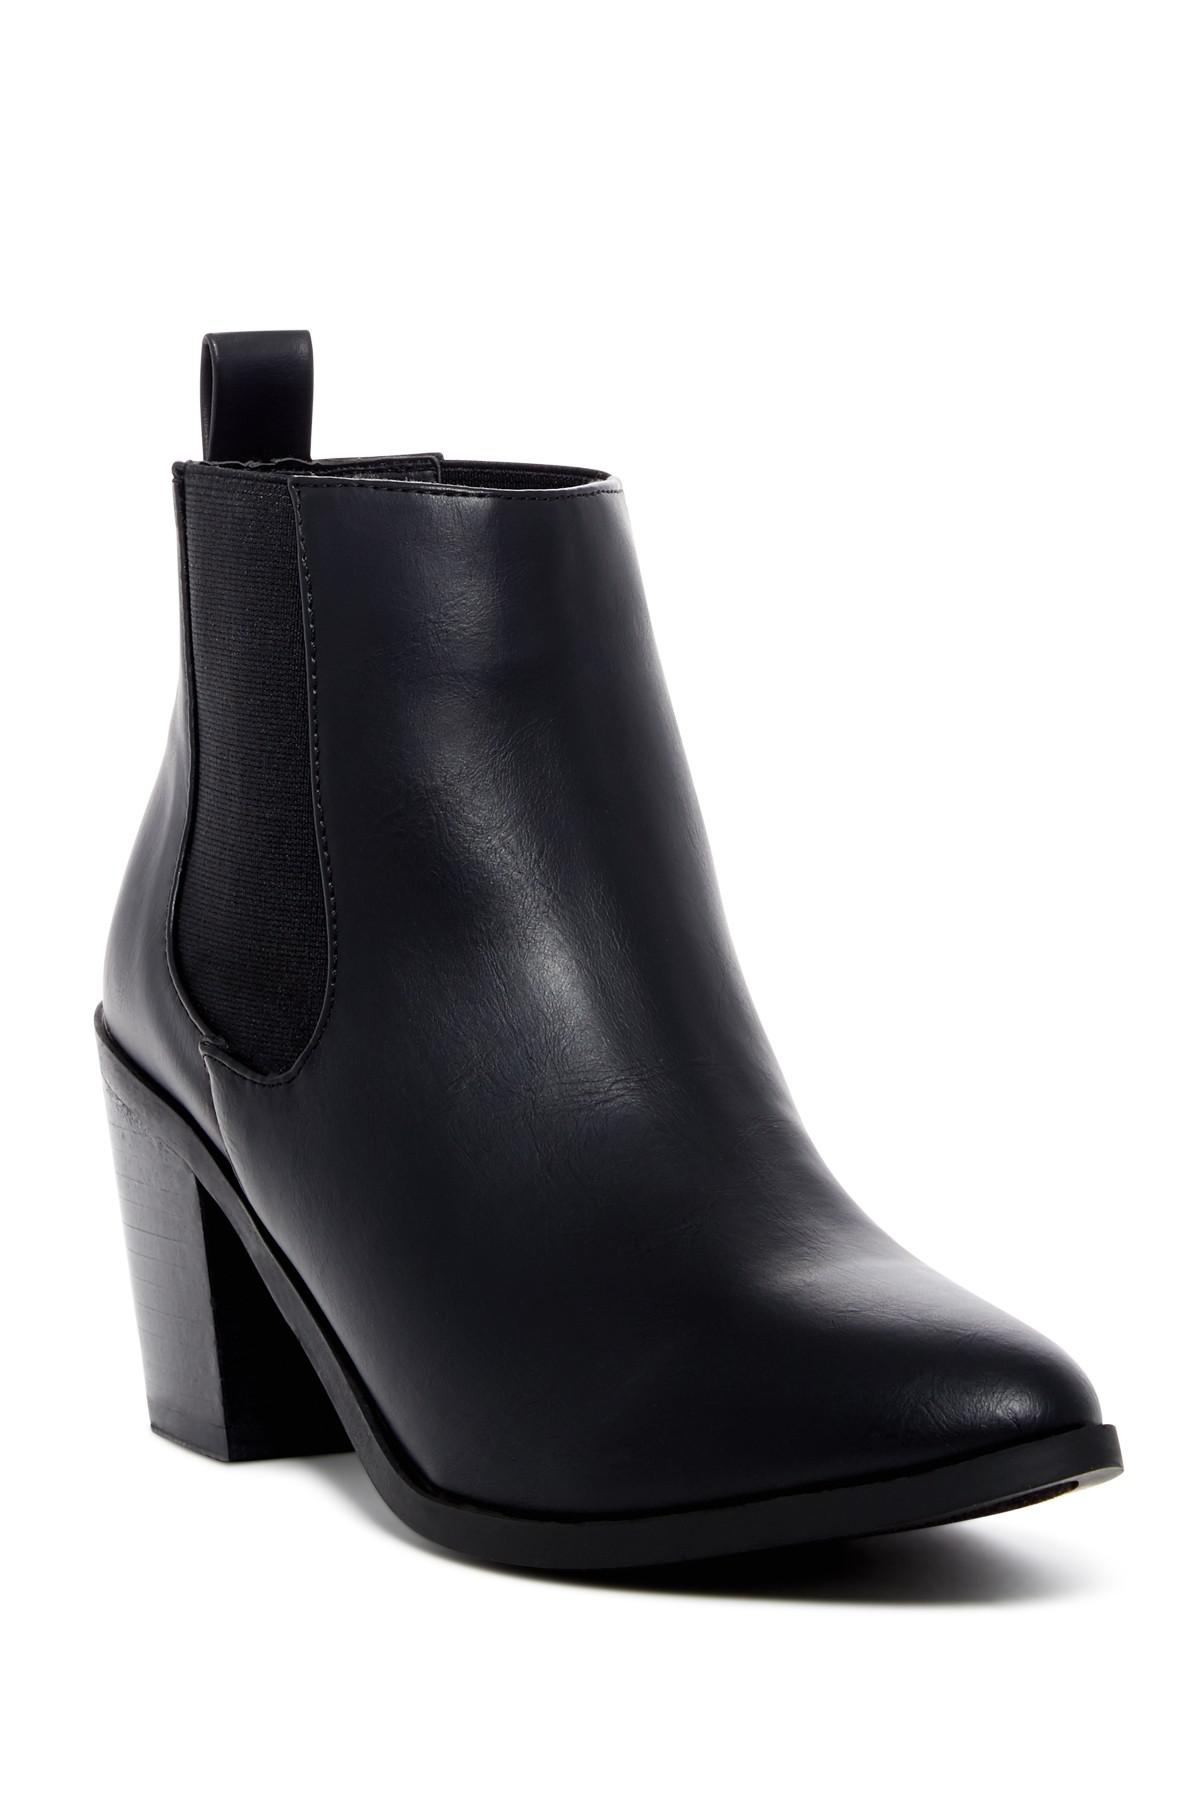 madden black girls personals From casual boots and sneakers, to dress shoes for every occasion, shop  dillard's large selection of steve madden black youth girls' shoes.